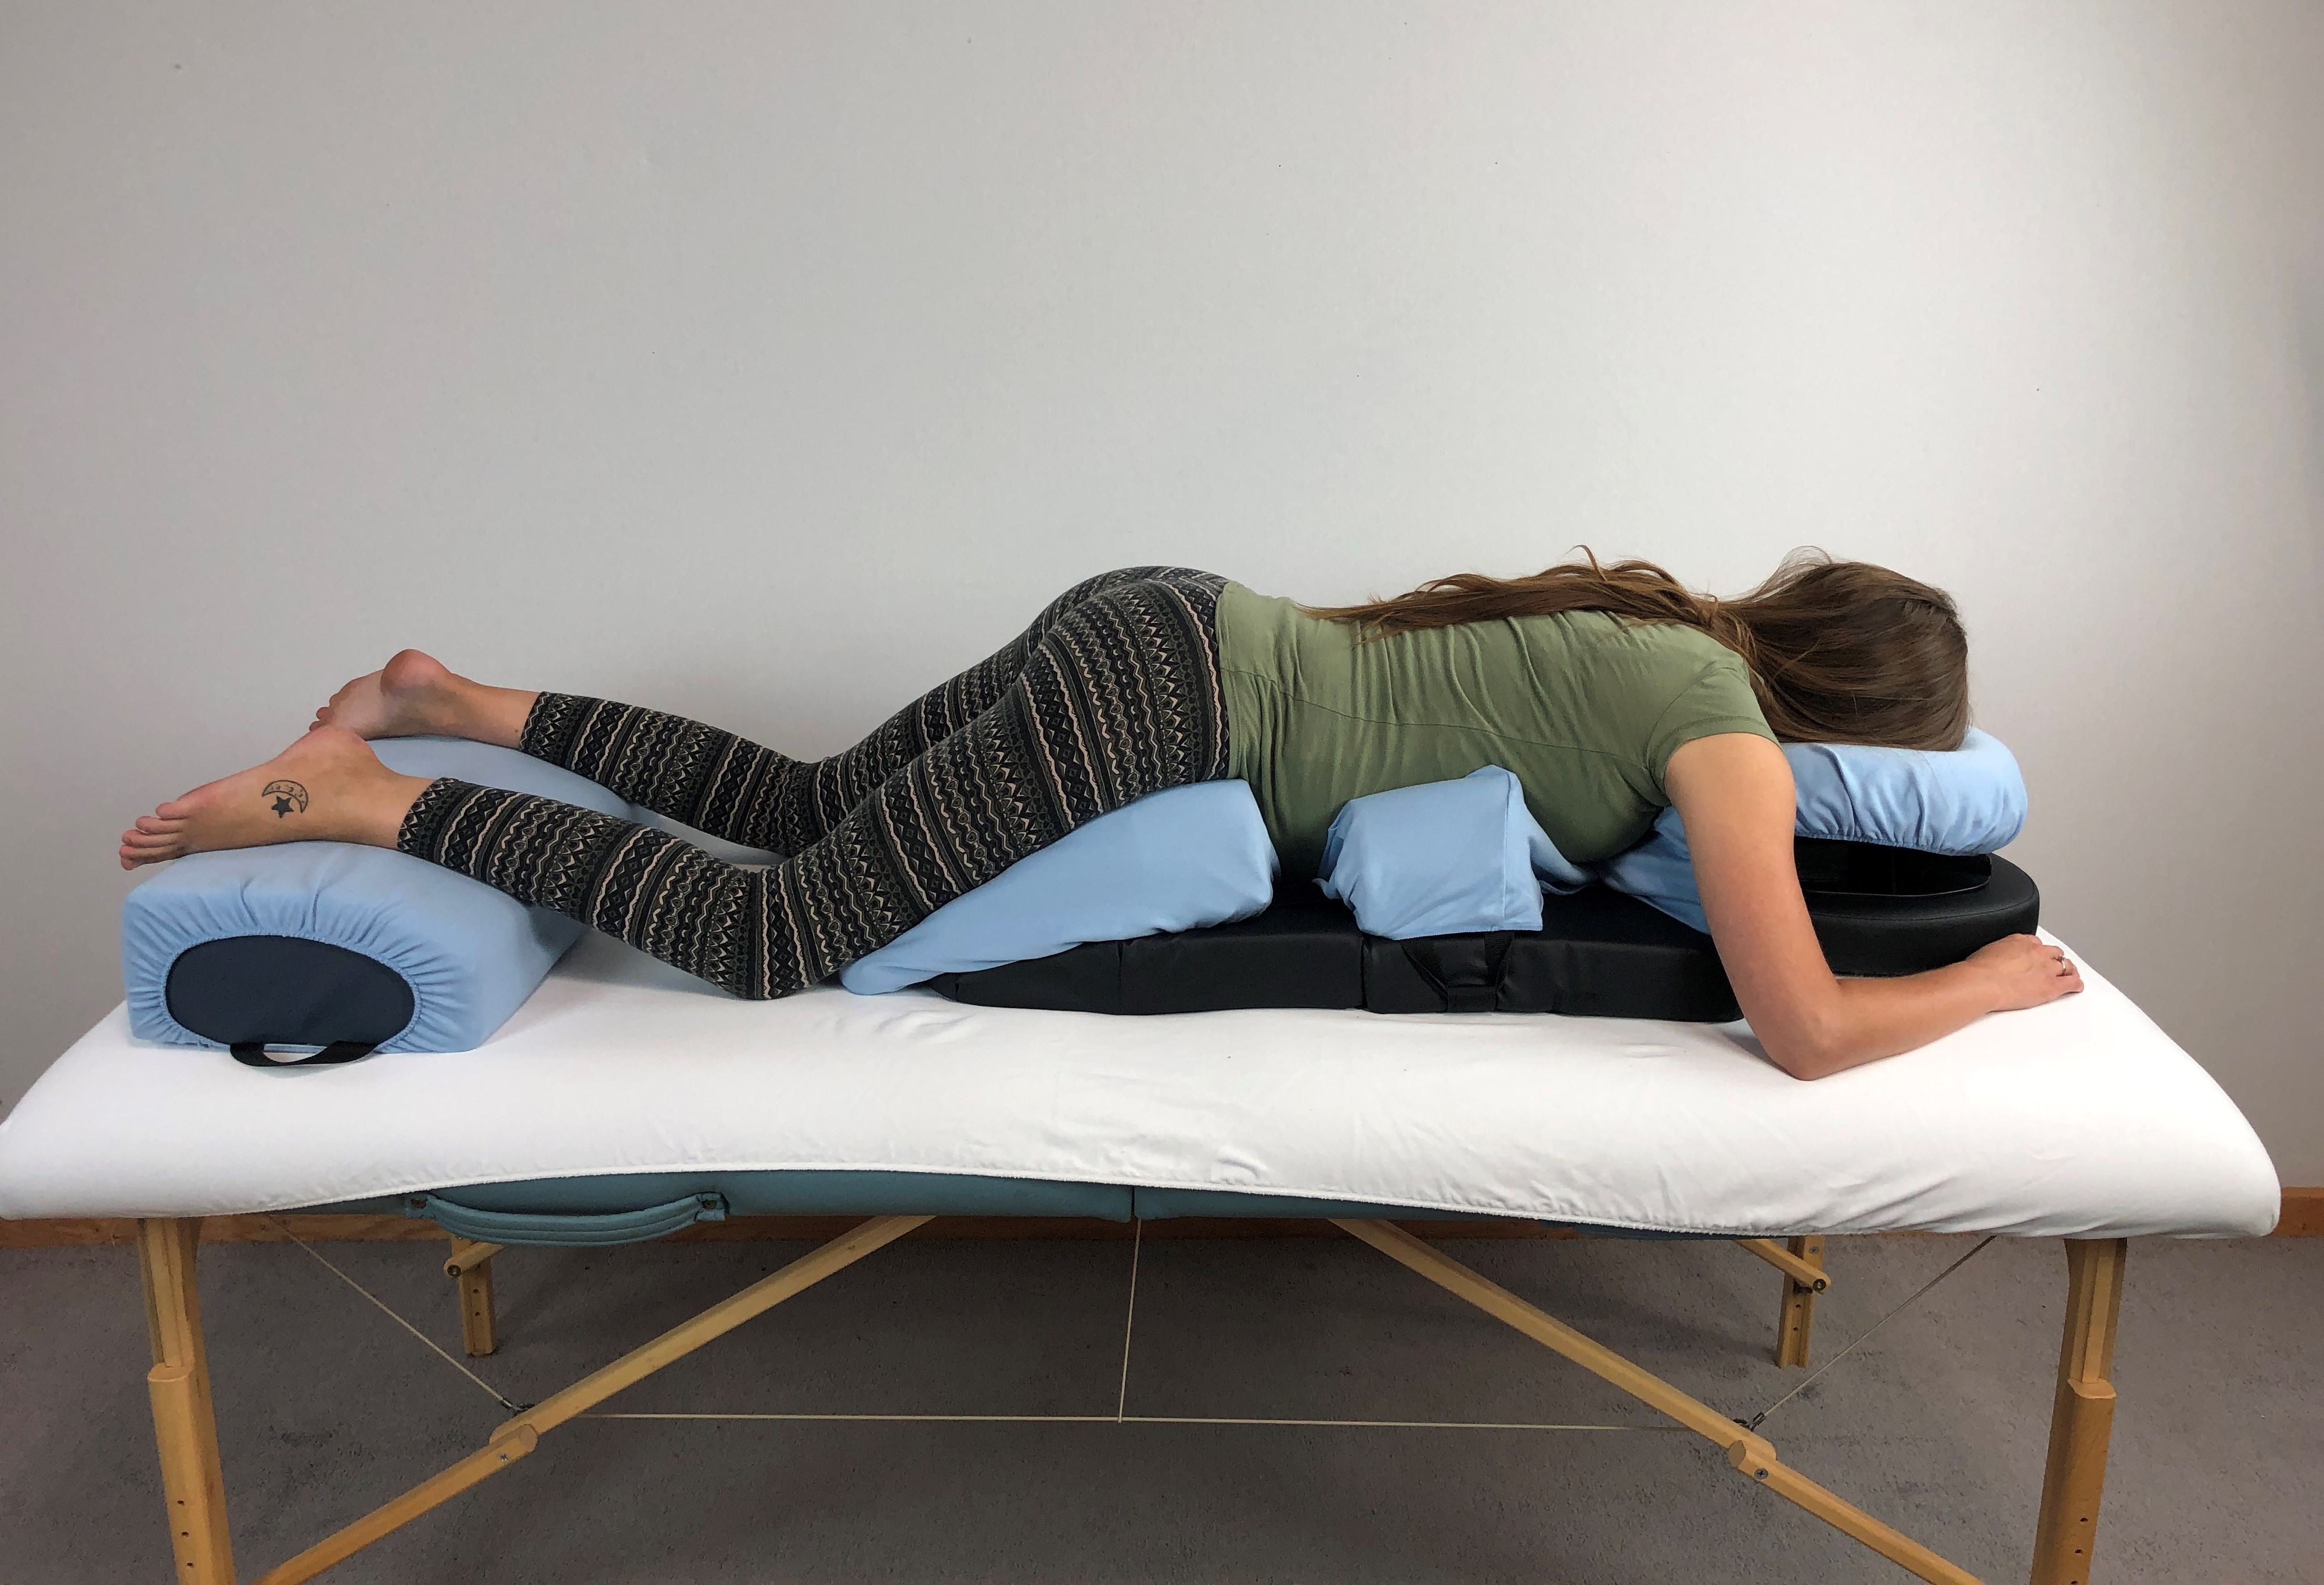 Pregnant women on the bodyCushion for Pregnancy